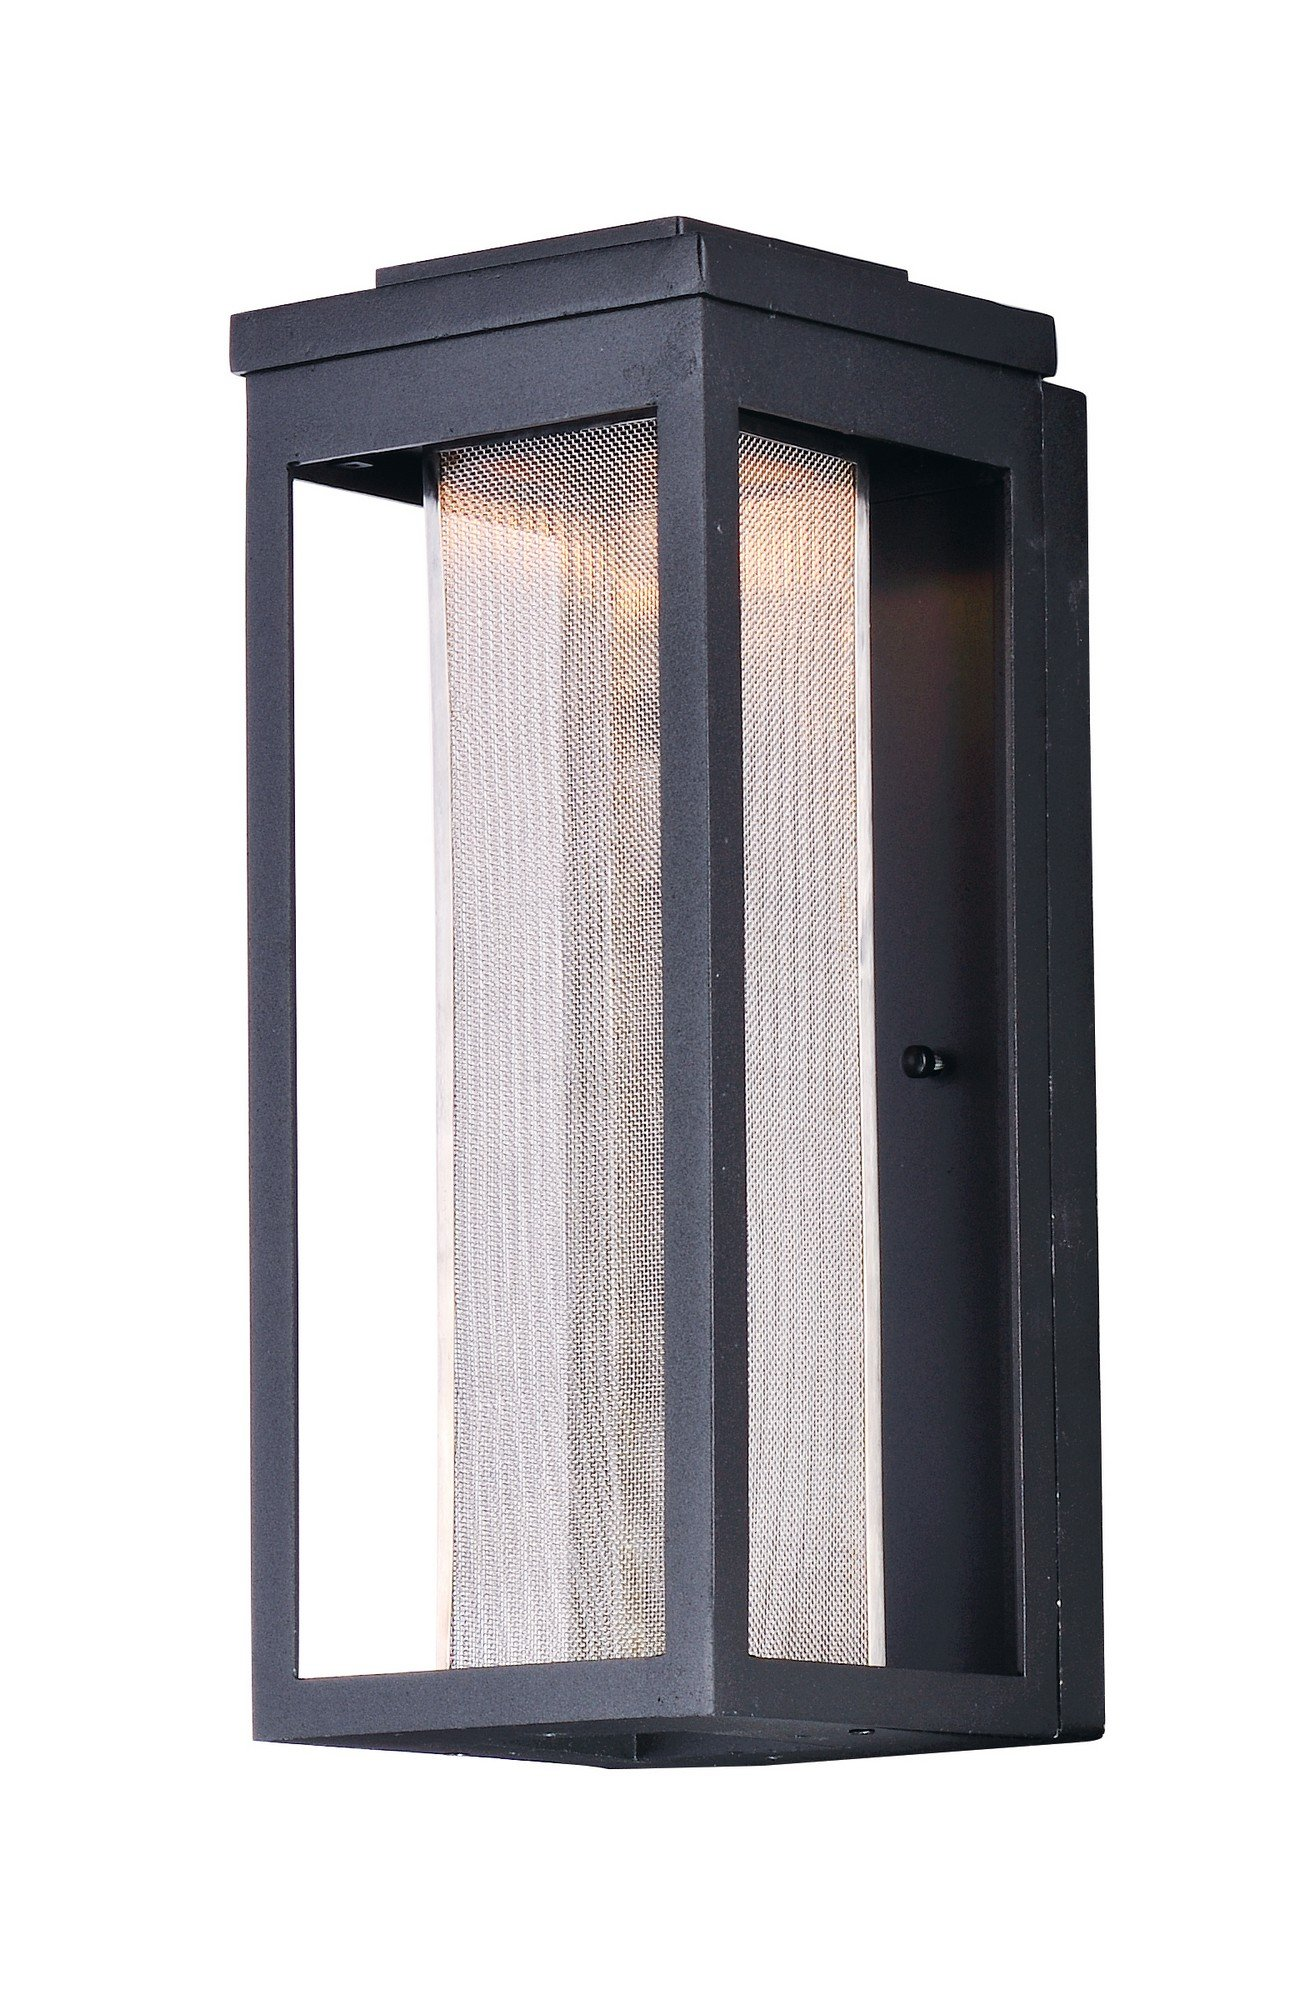 Maxim 55904MSCBK Salon LED 1-Light Outdoor Wall, Black Finish, Glass, PCB LED Bulb , 100W Max., Damp Safety Rating, Standard Dimmable, Shade Material, 3450 Rated Lumens